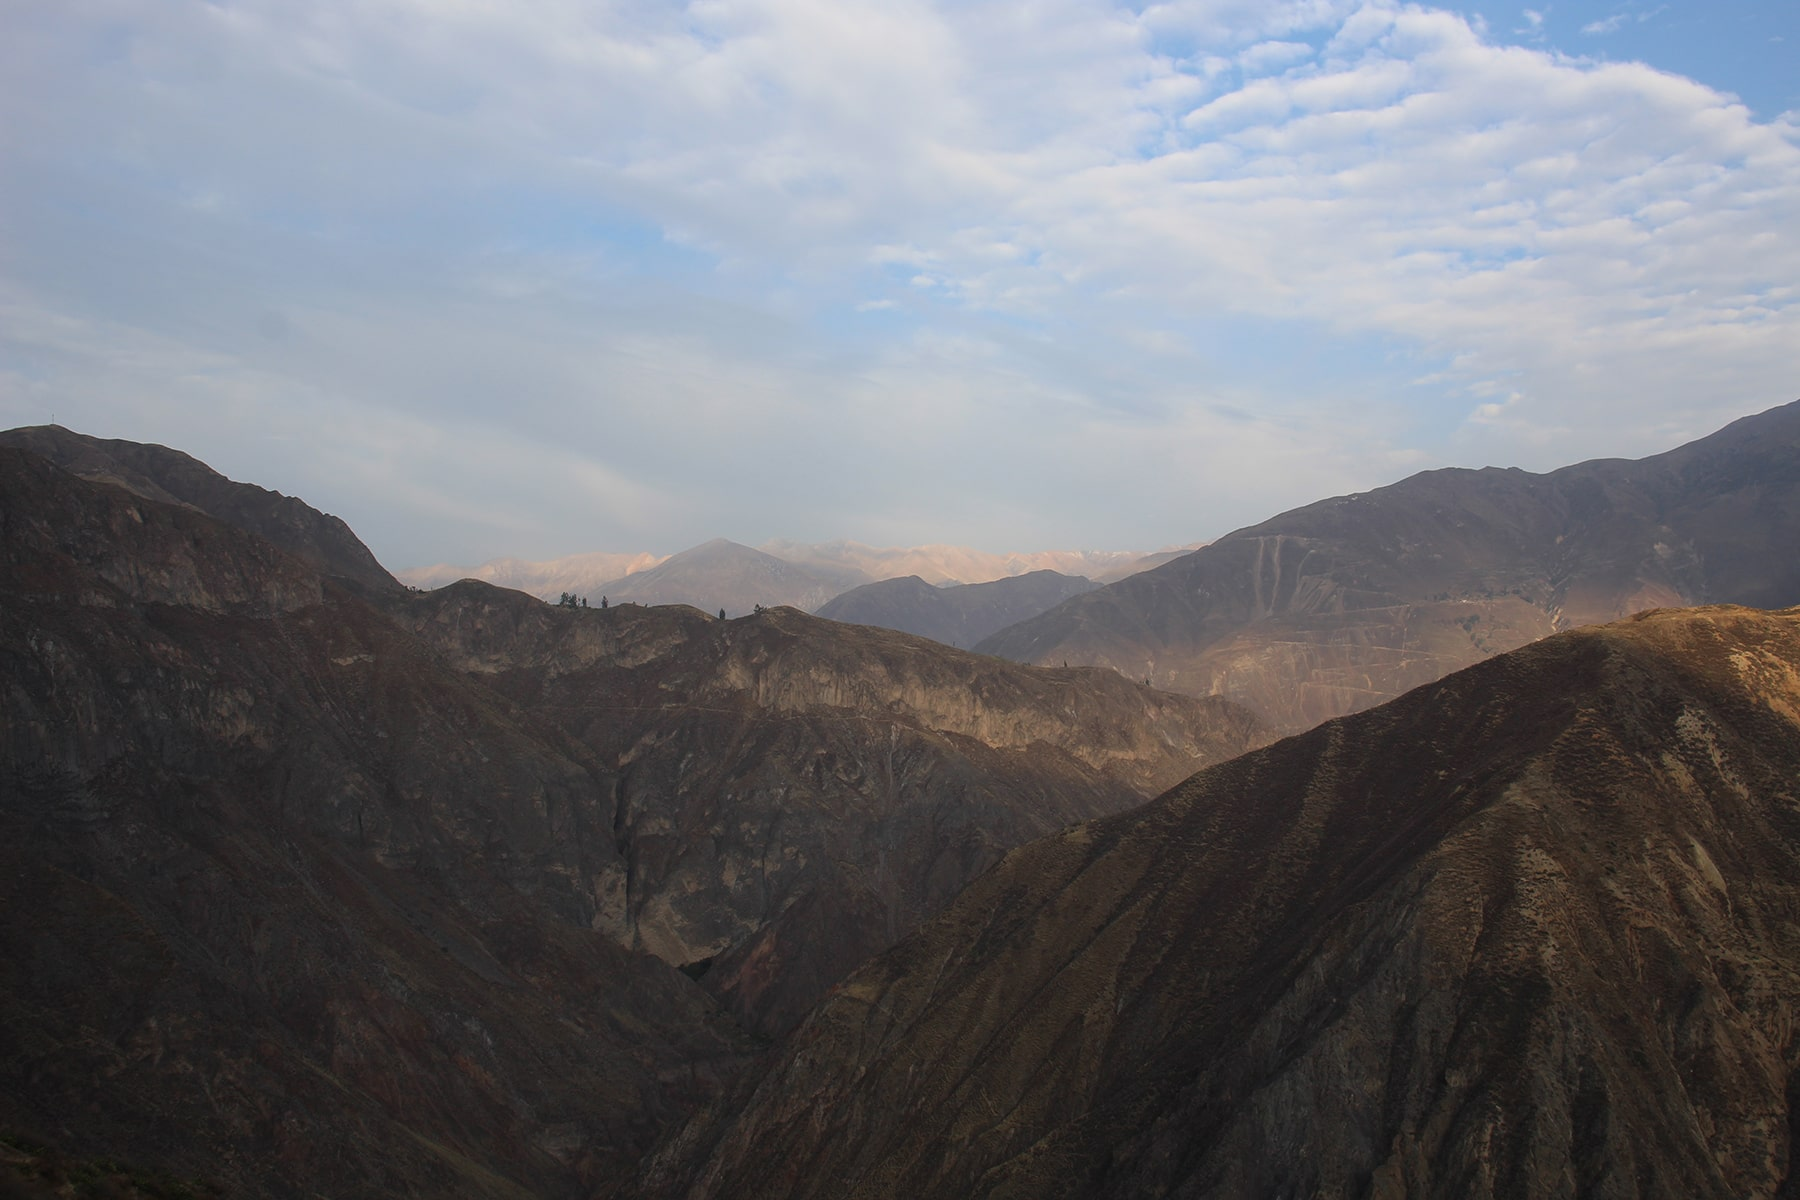 Mountains of Colca Canyon at dawn